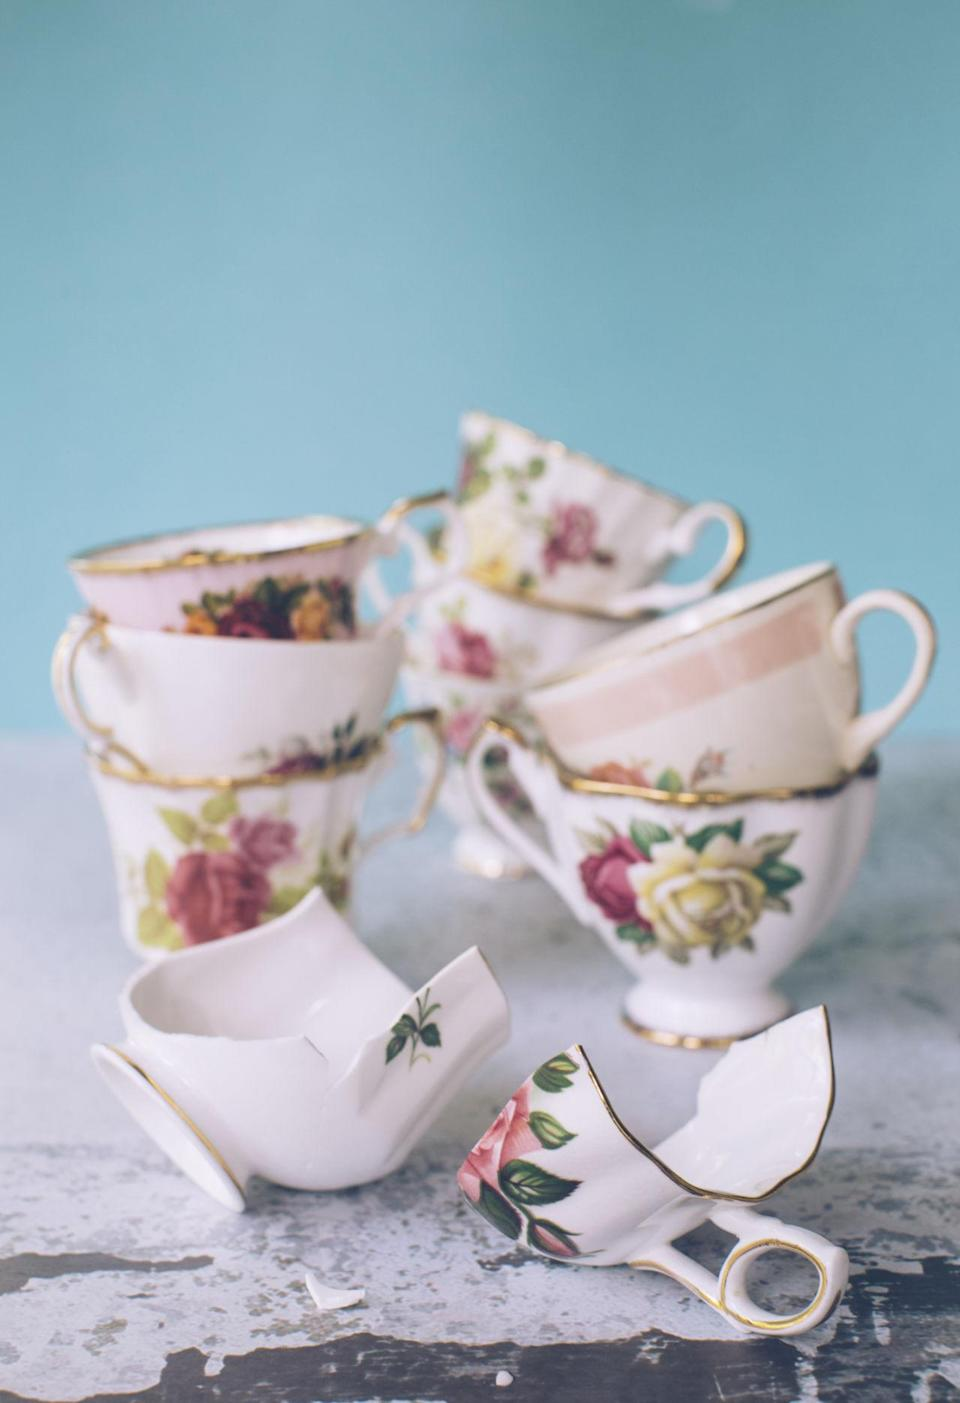 """<p>Every time you open the cabinet, there it is: The broken vintage teacup that you curse yourself for dropping, but still haven't gotten around to fixing. It might be past repair, but you still hesitate throwing it out. 'We're scared of not having enough, it's a poverty mentality,' says <a rel=""""nofollow noopener"""" href=""""http://www.anjiecho.com/"""" target=""""_blank"""" data-ylk=""""slk:Anjie Cho"""" class=""""link rapid-noclick-resp"""">Anjie Cho</a>, architect, certified feng shui consultant and founder of Holistic Spaces. 'Which really is about not feeling """"enough"""" or worthy in ourselves. The fear of letting go of things.'</p><p>Cho says that it's also about the fear of having to not just let go, but also having to buy something again if it turns out we needed it after all. It's an overall exhausting mental process to go through whenever you see the item in question. 'Cultivating the poverty mentality only perpetuates it, and surrounding yourself with broken items creates a similar broken energy in our inner and outer lives. It also creates a huge energy drain. Like every time you see that broken item that needs refinishing, you start to feel guilt,' she says. </p><p><strong>More: </strong><span><strong><em><a rel=""""nofollow noopener"""" href=""""http://www.housebeautiful.co.uk/lifestyle/storage/news/a154/kitchen-storage-solutions/"""" target=""""_blank"""" data-ylk=""""slk:Kitchen storage solutions: how to ditch the clutter"""" class=""""link rapid-noclick-resp"""">Kitchen storage solutions: how to ditch the clutter</a></em></strong></span></p>"""